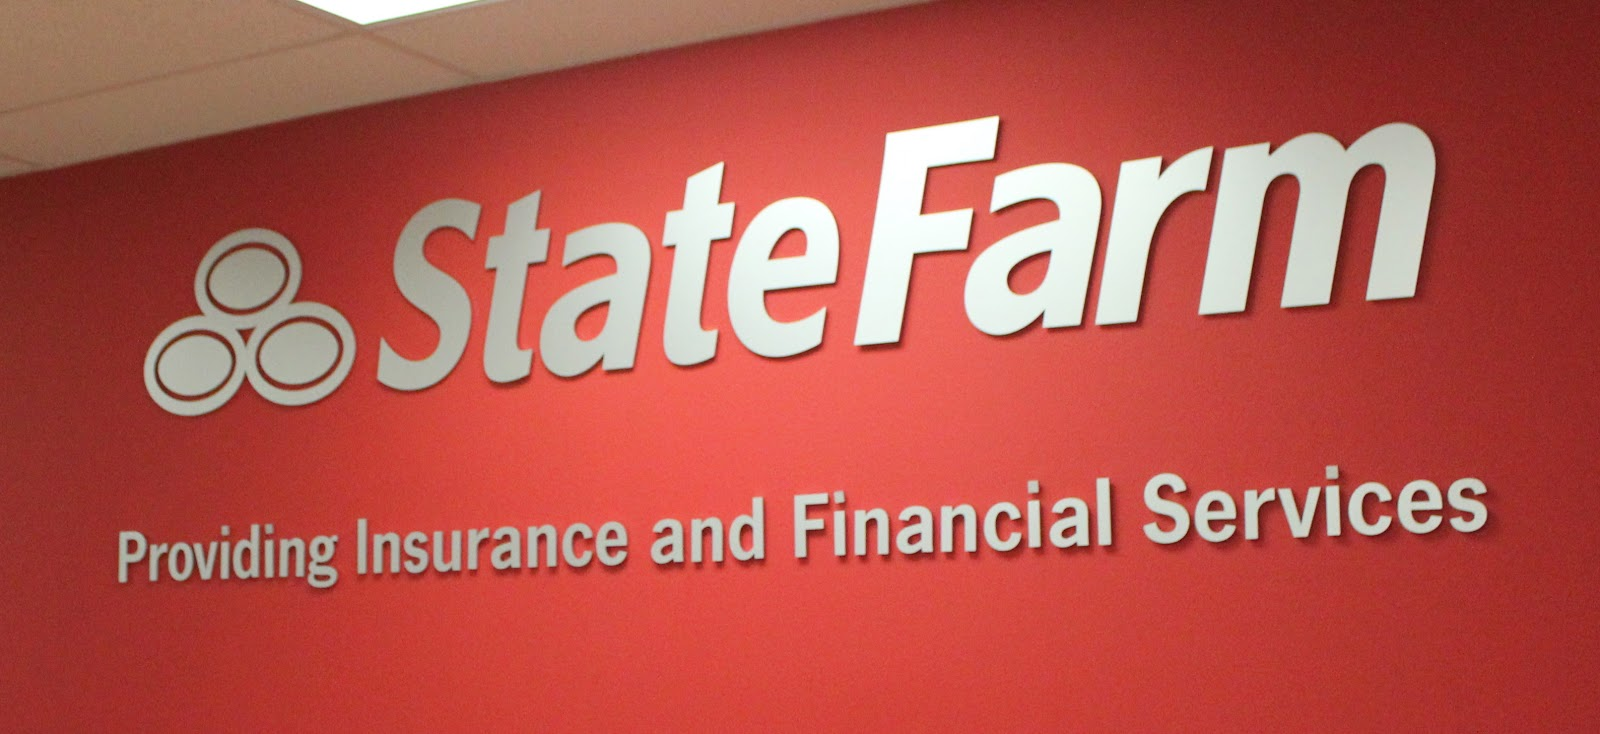 John hernandez state farm agent - The Familiar Slogan Like A Good Neighbor State Farm Is There Can Now Ring True For Menifee Residents As The Newest Local State Farm Agency Opens Off